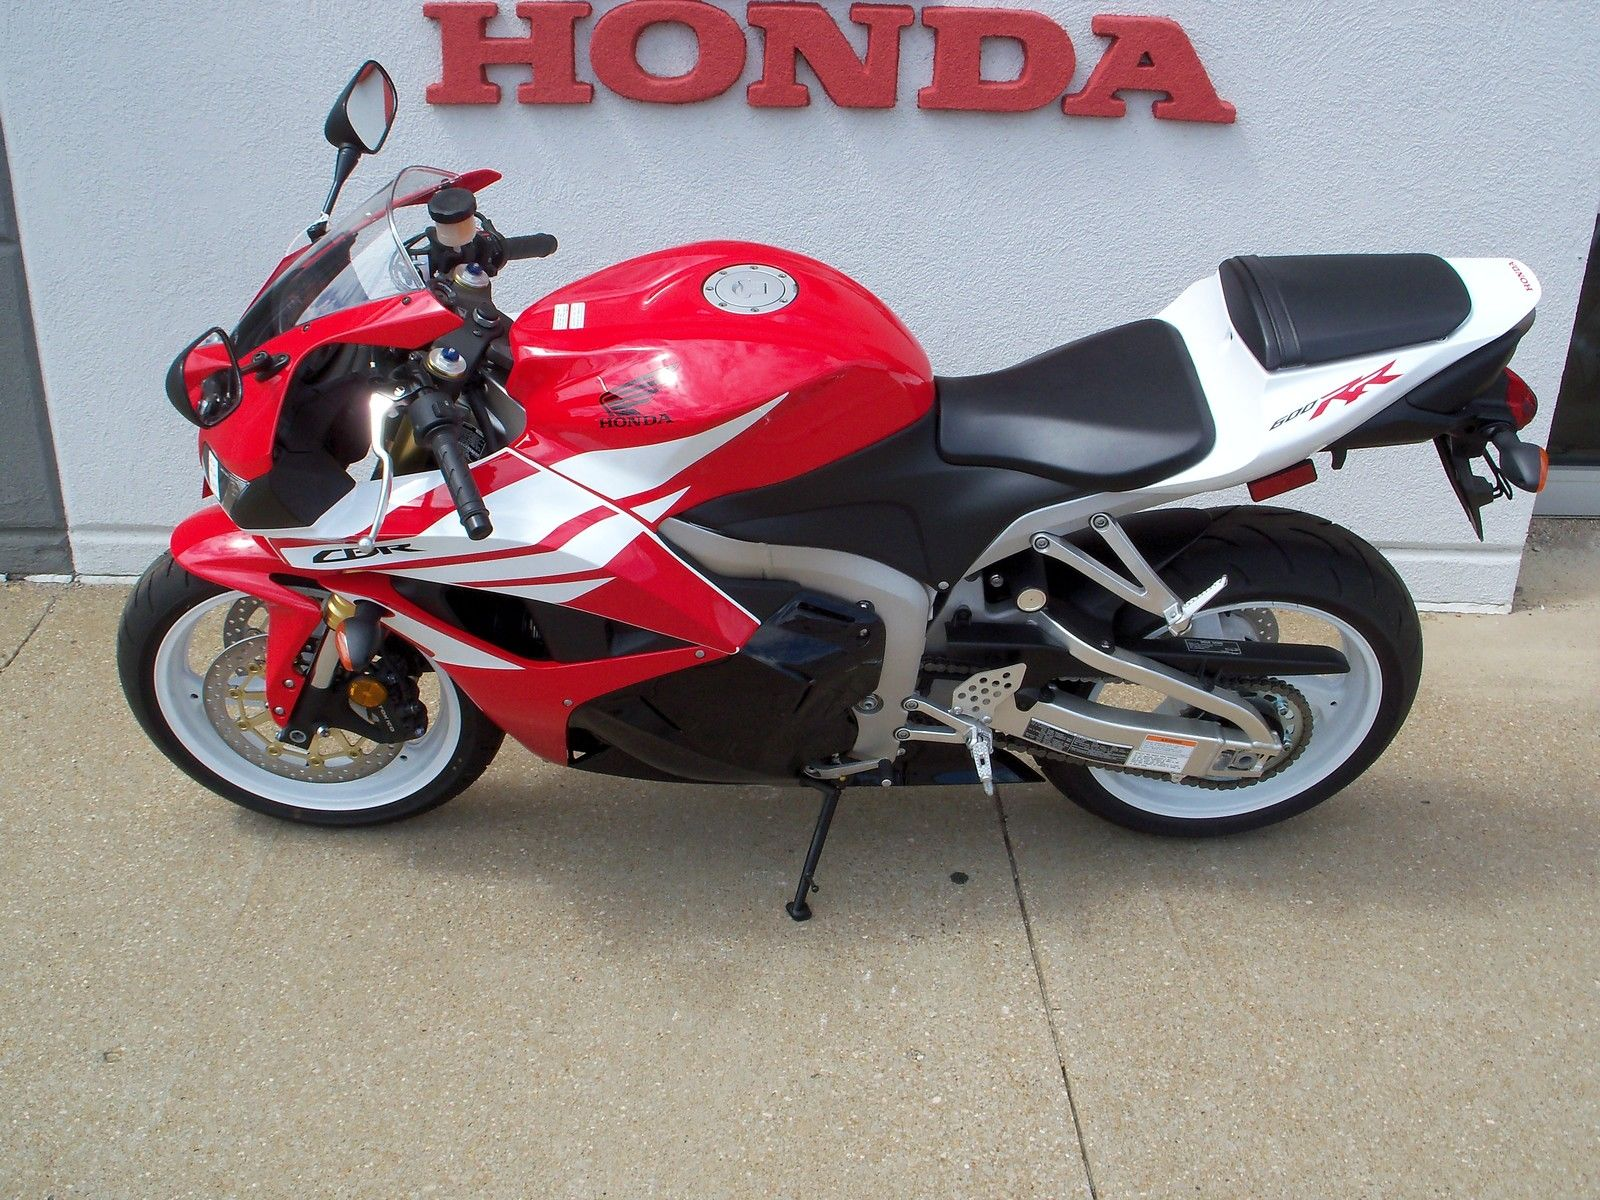 New Red And White Honda Cbr600rr Sport Bike Motorcycle